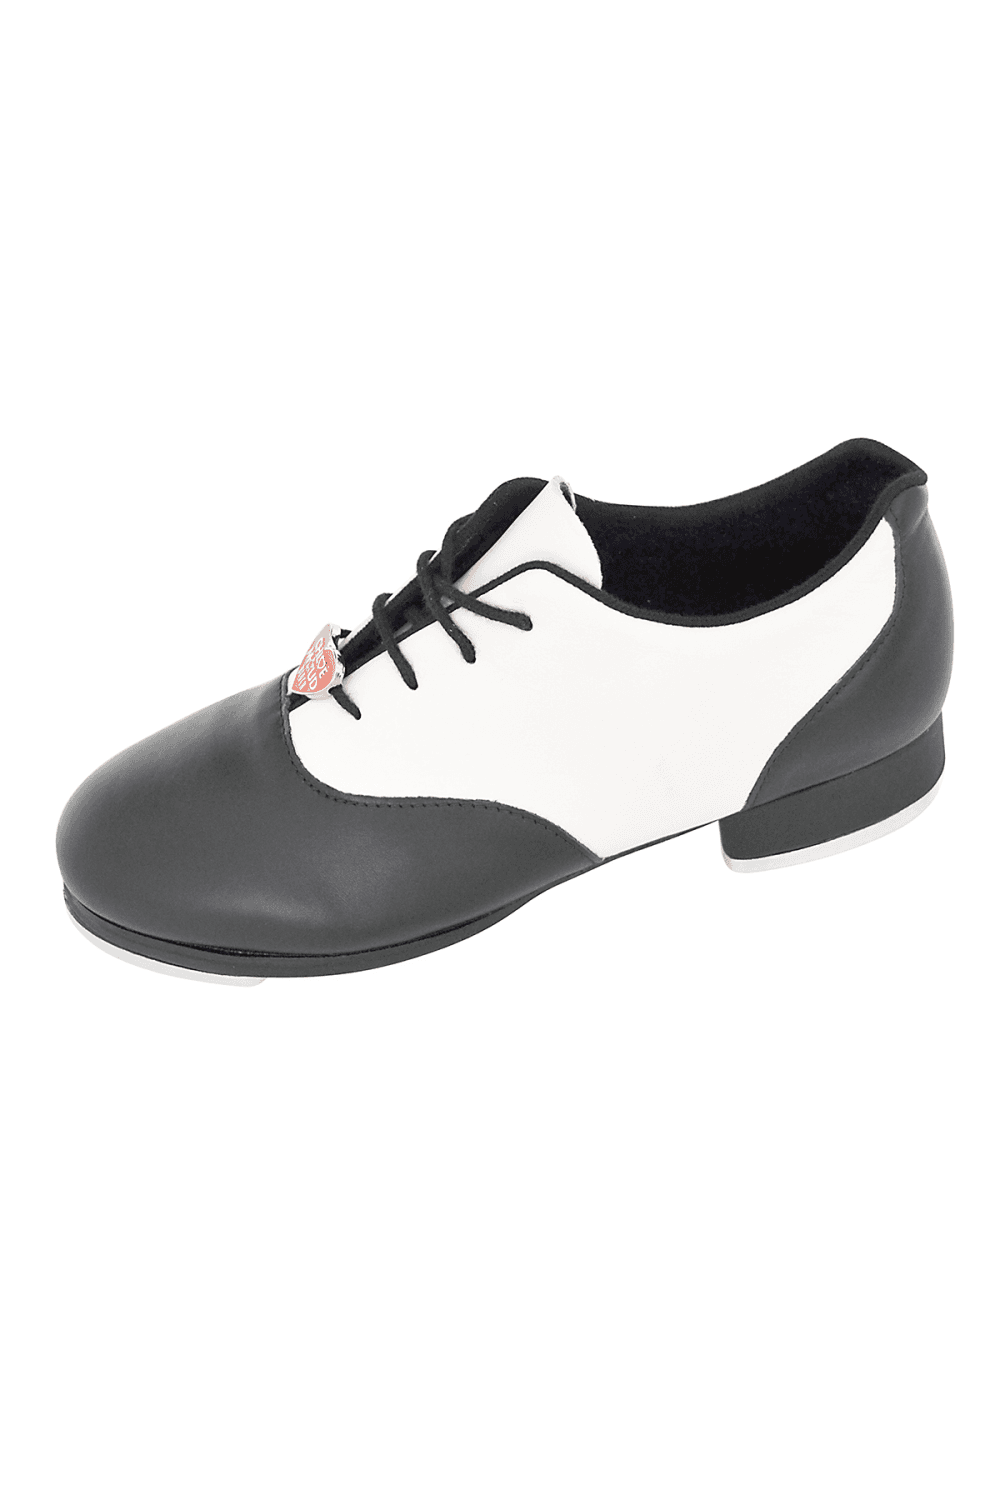 Tap Shoes Buying Guide - Finding the Best Tap Shoes For You f561272d029